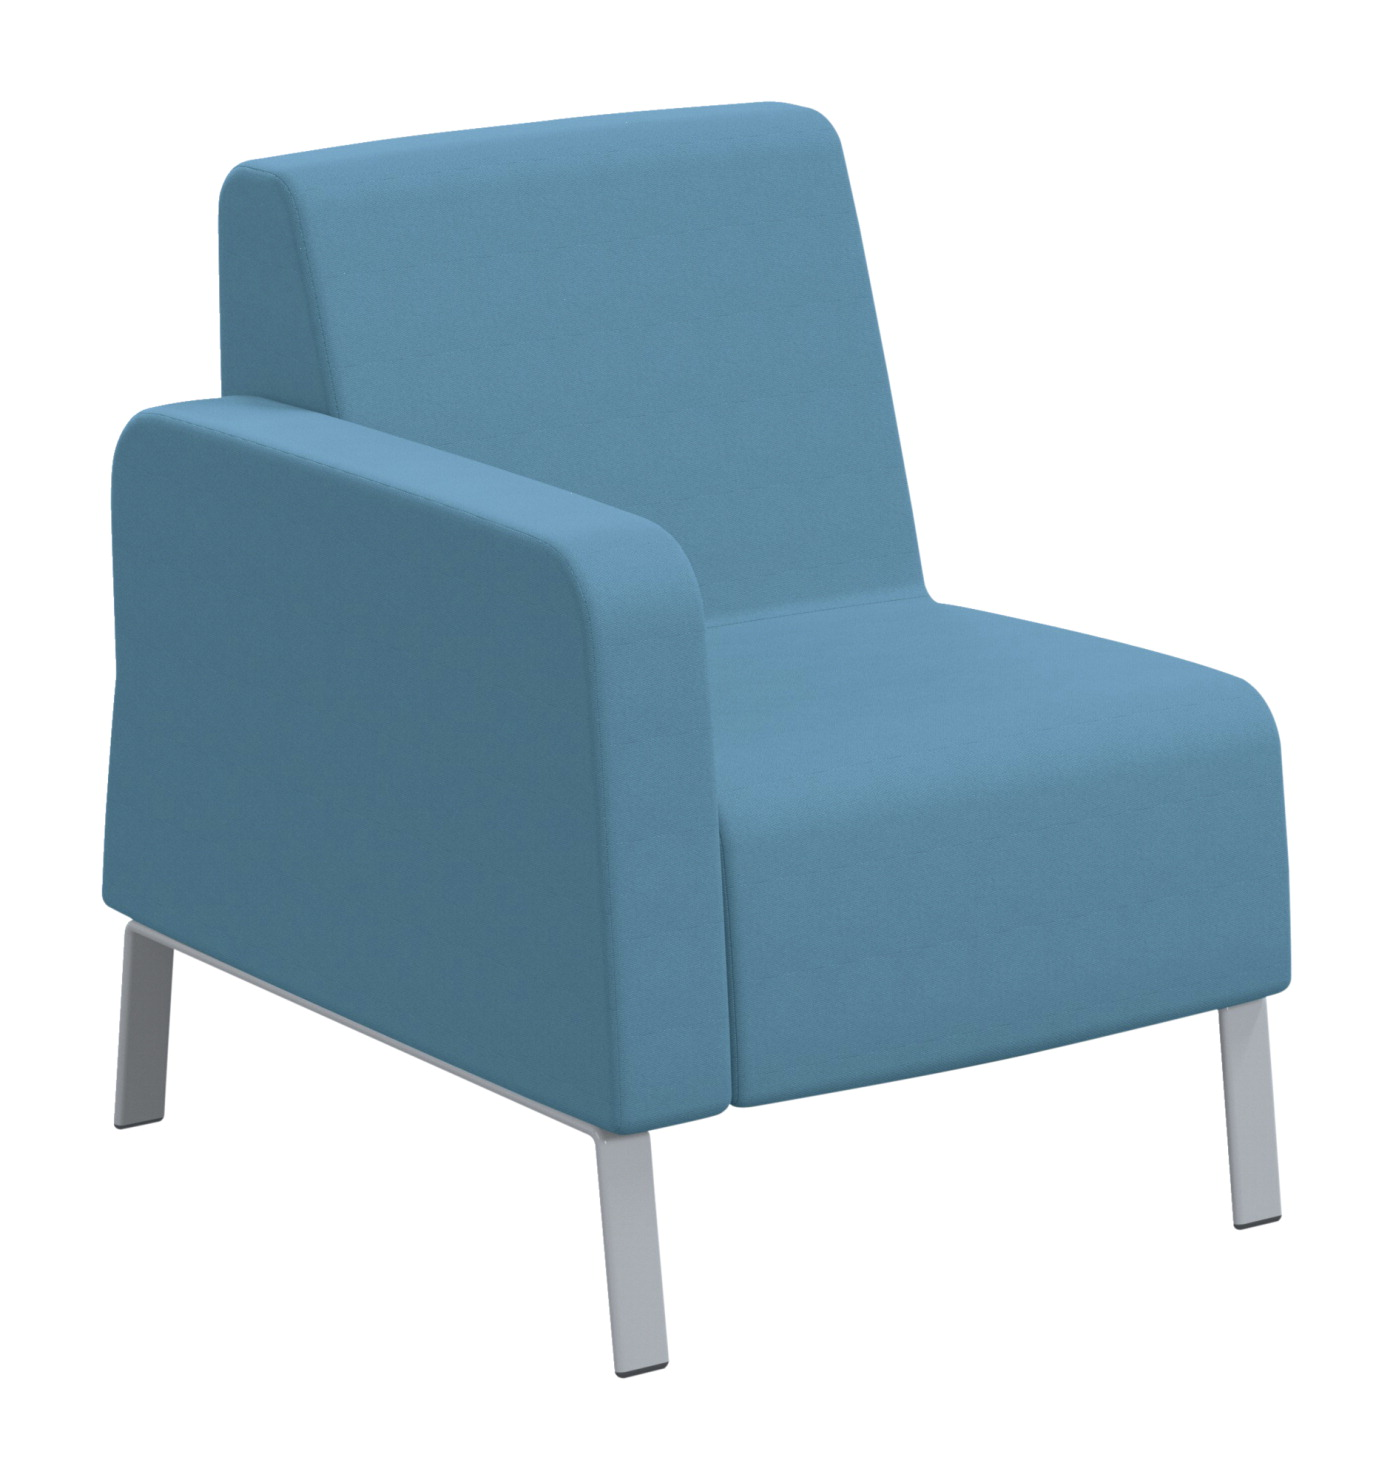 Classroom Select Soft Seating Right Arm Only Chair, 27-1/2 x 32 x 34 Inches, Various Options